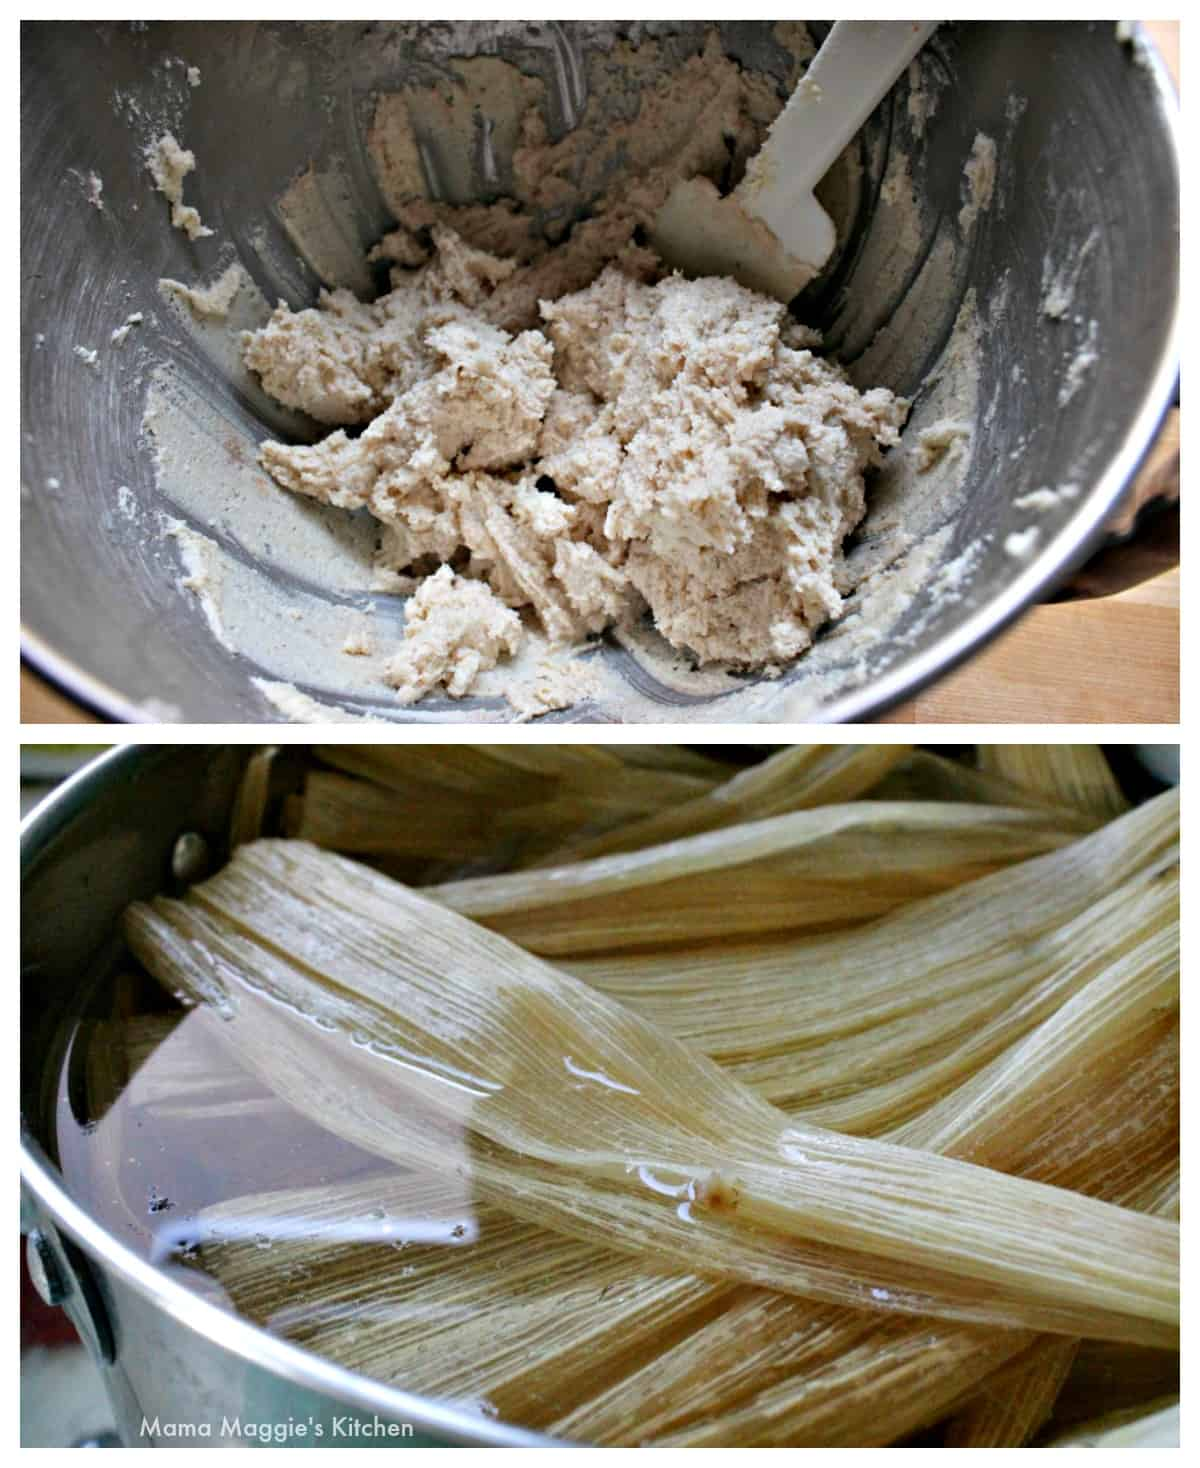 "Make masa for tamale and soften corn husks. ""Width ="" 1200 ""height ="" 1468 ""class ="" lazy lazy hidden alignnone size-full wp-image-18357 ""srcset ="" ""srcset ="" https: // inmamamaggieskitchen. com / wp-content / uploads / 2020/04 / Masa-and-Corn-Husks.jpg 1200w, https://inmamamaggieskitchen.com/wp-content/uploads/2020/04/Masa-and-Corn-Husks-245x300 .jpg 245w, https://inmamamaggieskitchen.com/wp-content/uploads/2020/04/Masa-and-Corn-Husks-837x1024.jpg 837w, https://inmamaggieskitchen.com/wp-content/uploads/2020 /04/Masa-and-Corn-Husks-768x940.jpg 768w ""sizes ="" (max width: 1200px) 100vw, 1200px"